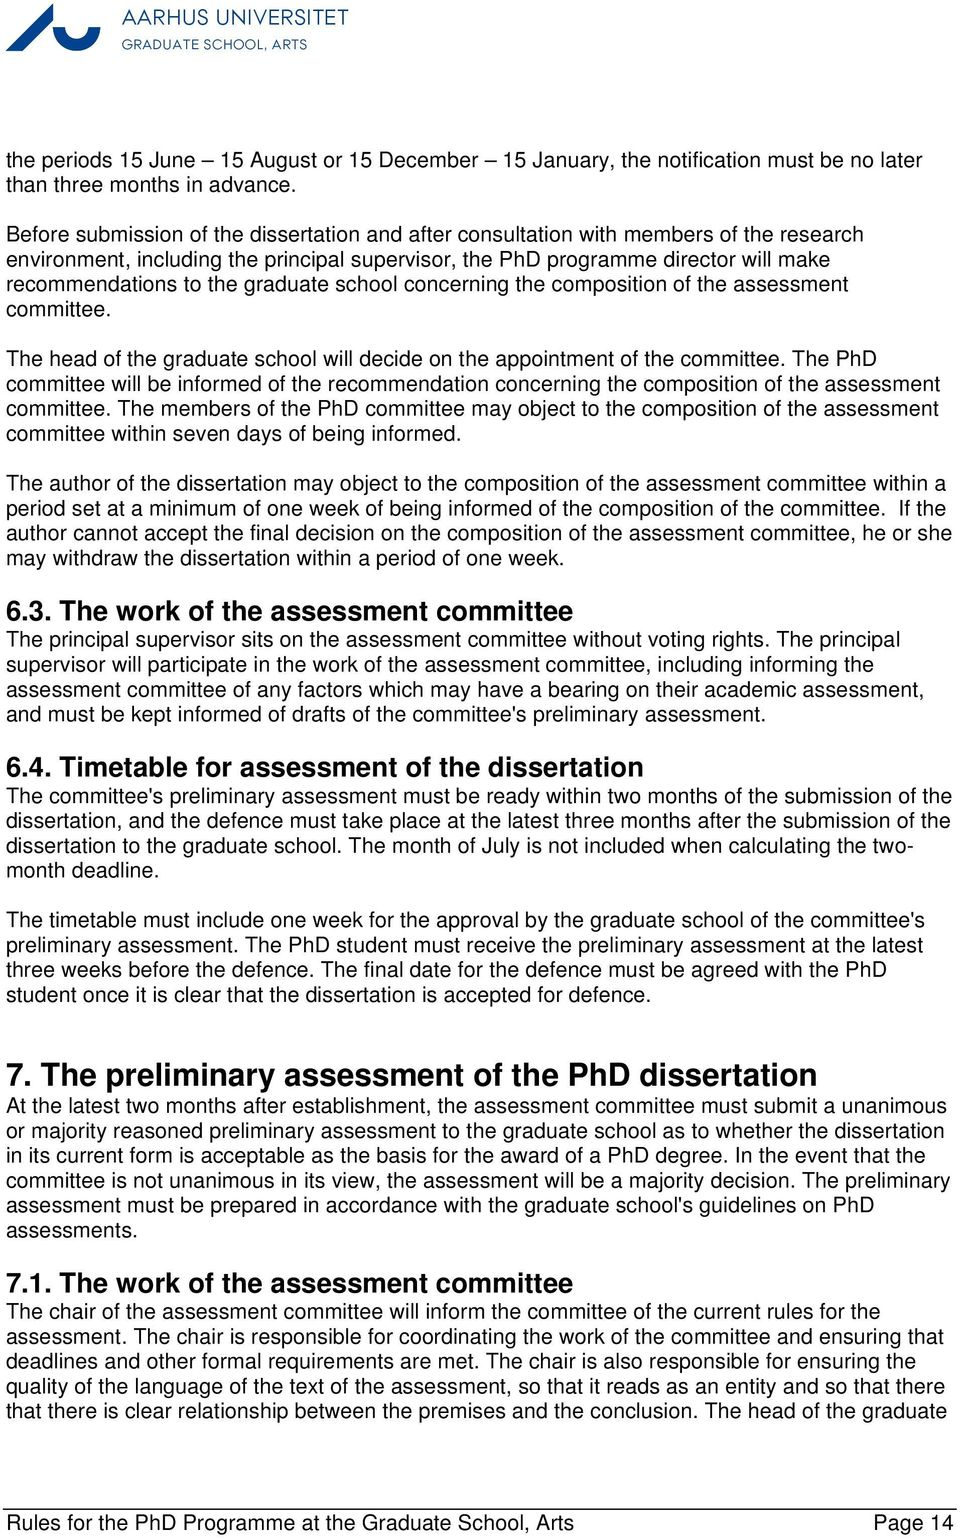 graduate school concerning the composition of the assessment committee. The head of the graduate school will decide on the appointment of the committee.